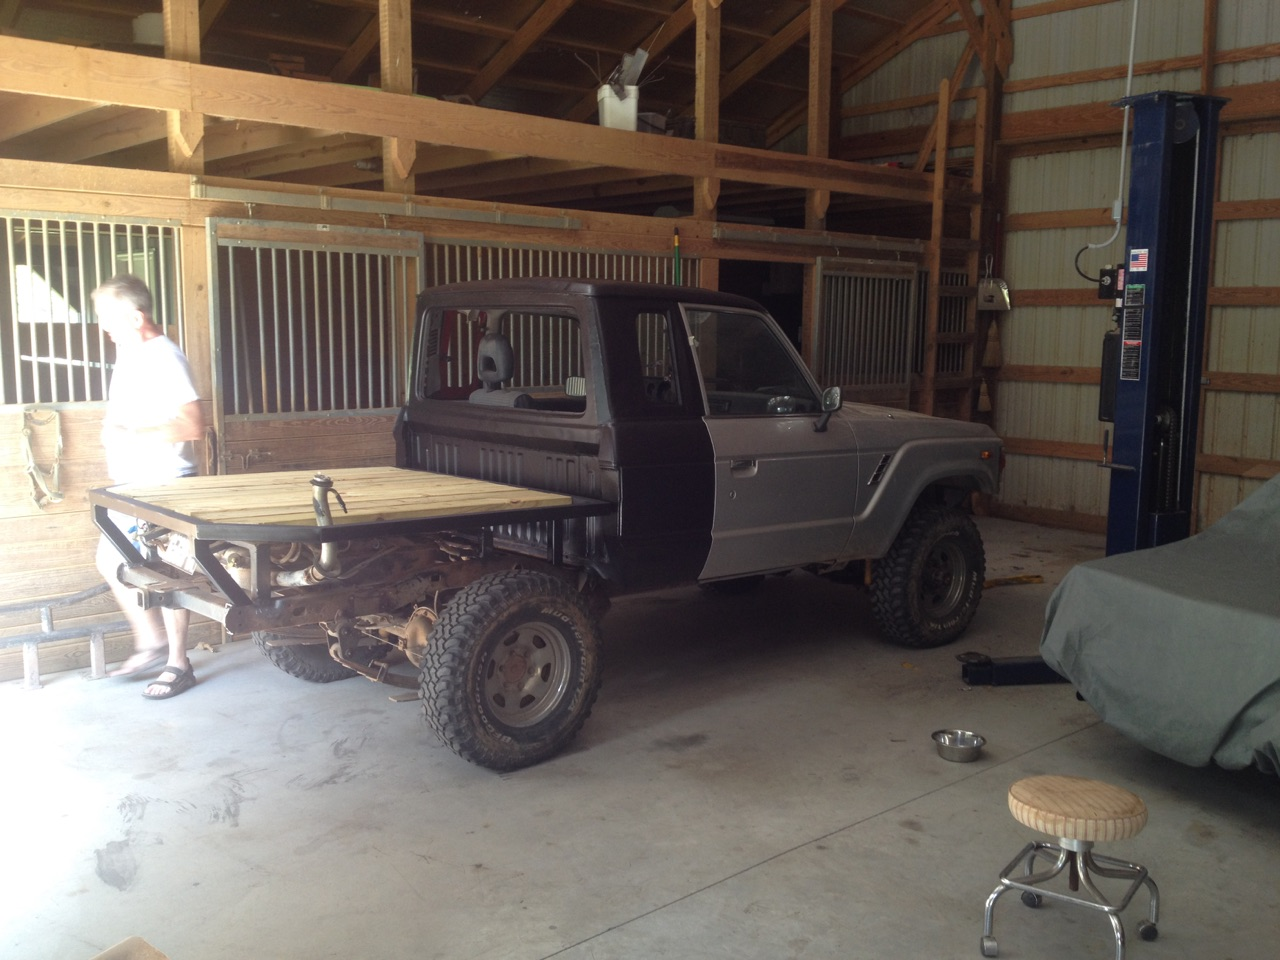 60 Series Flatbed/Ute/Tray back etc    | Page 6 | IH8MUD Forum